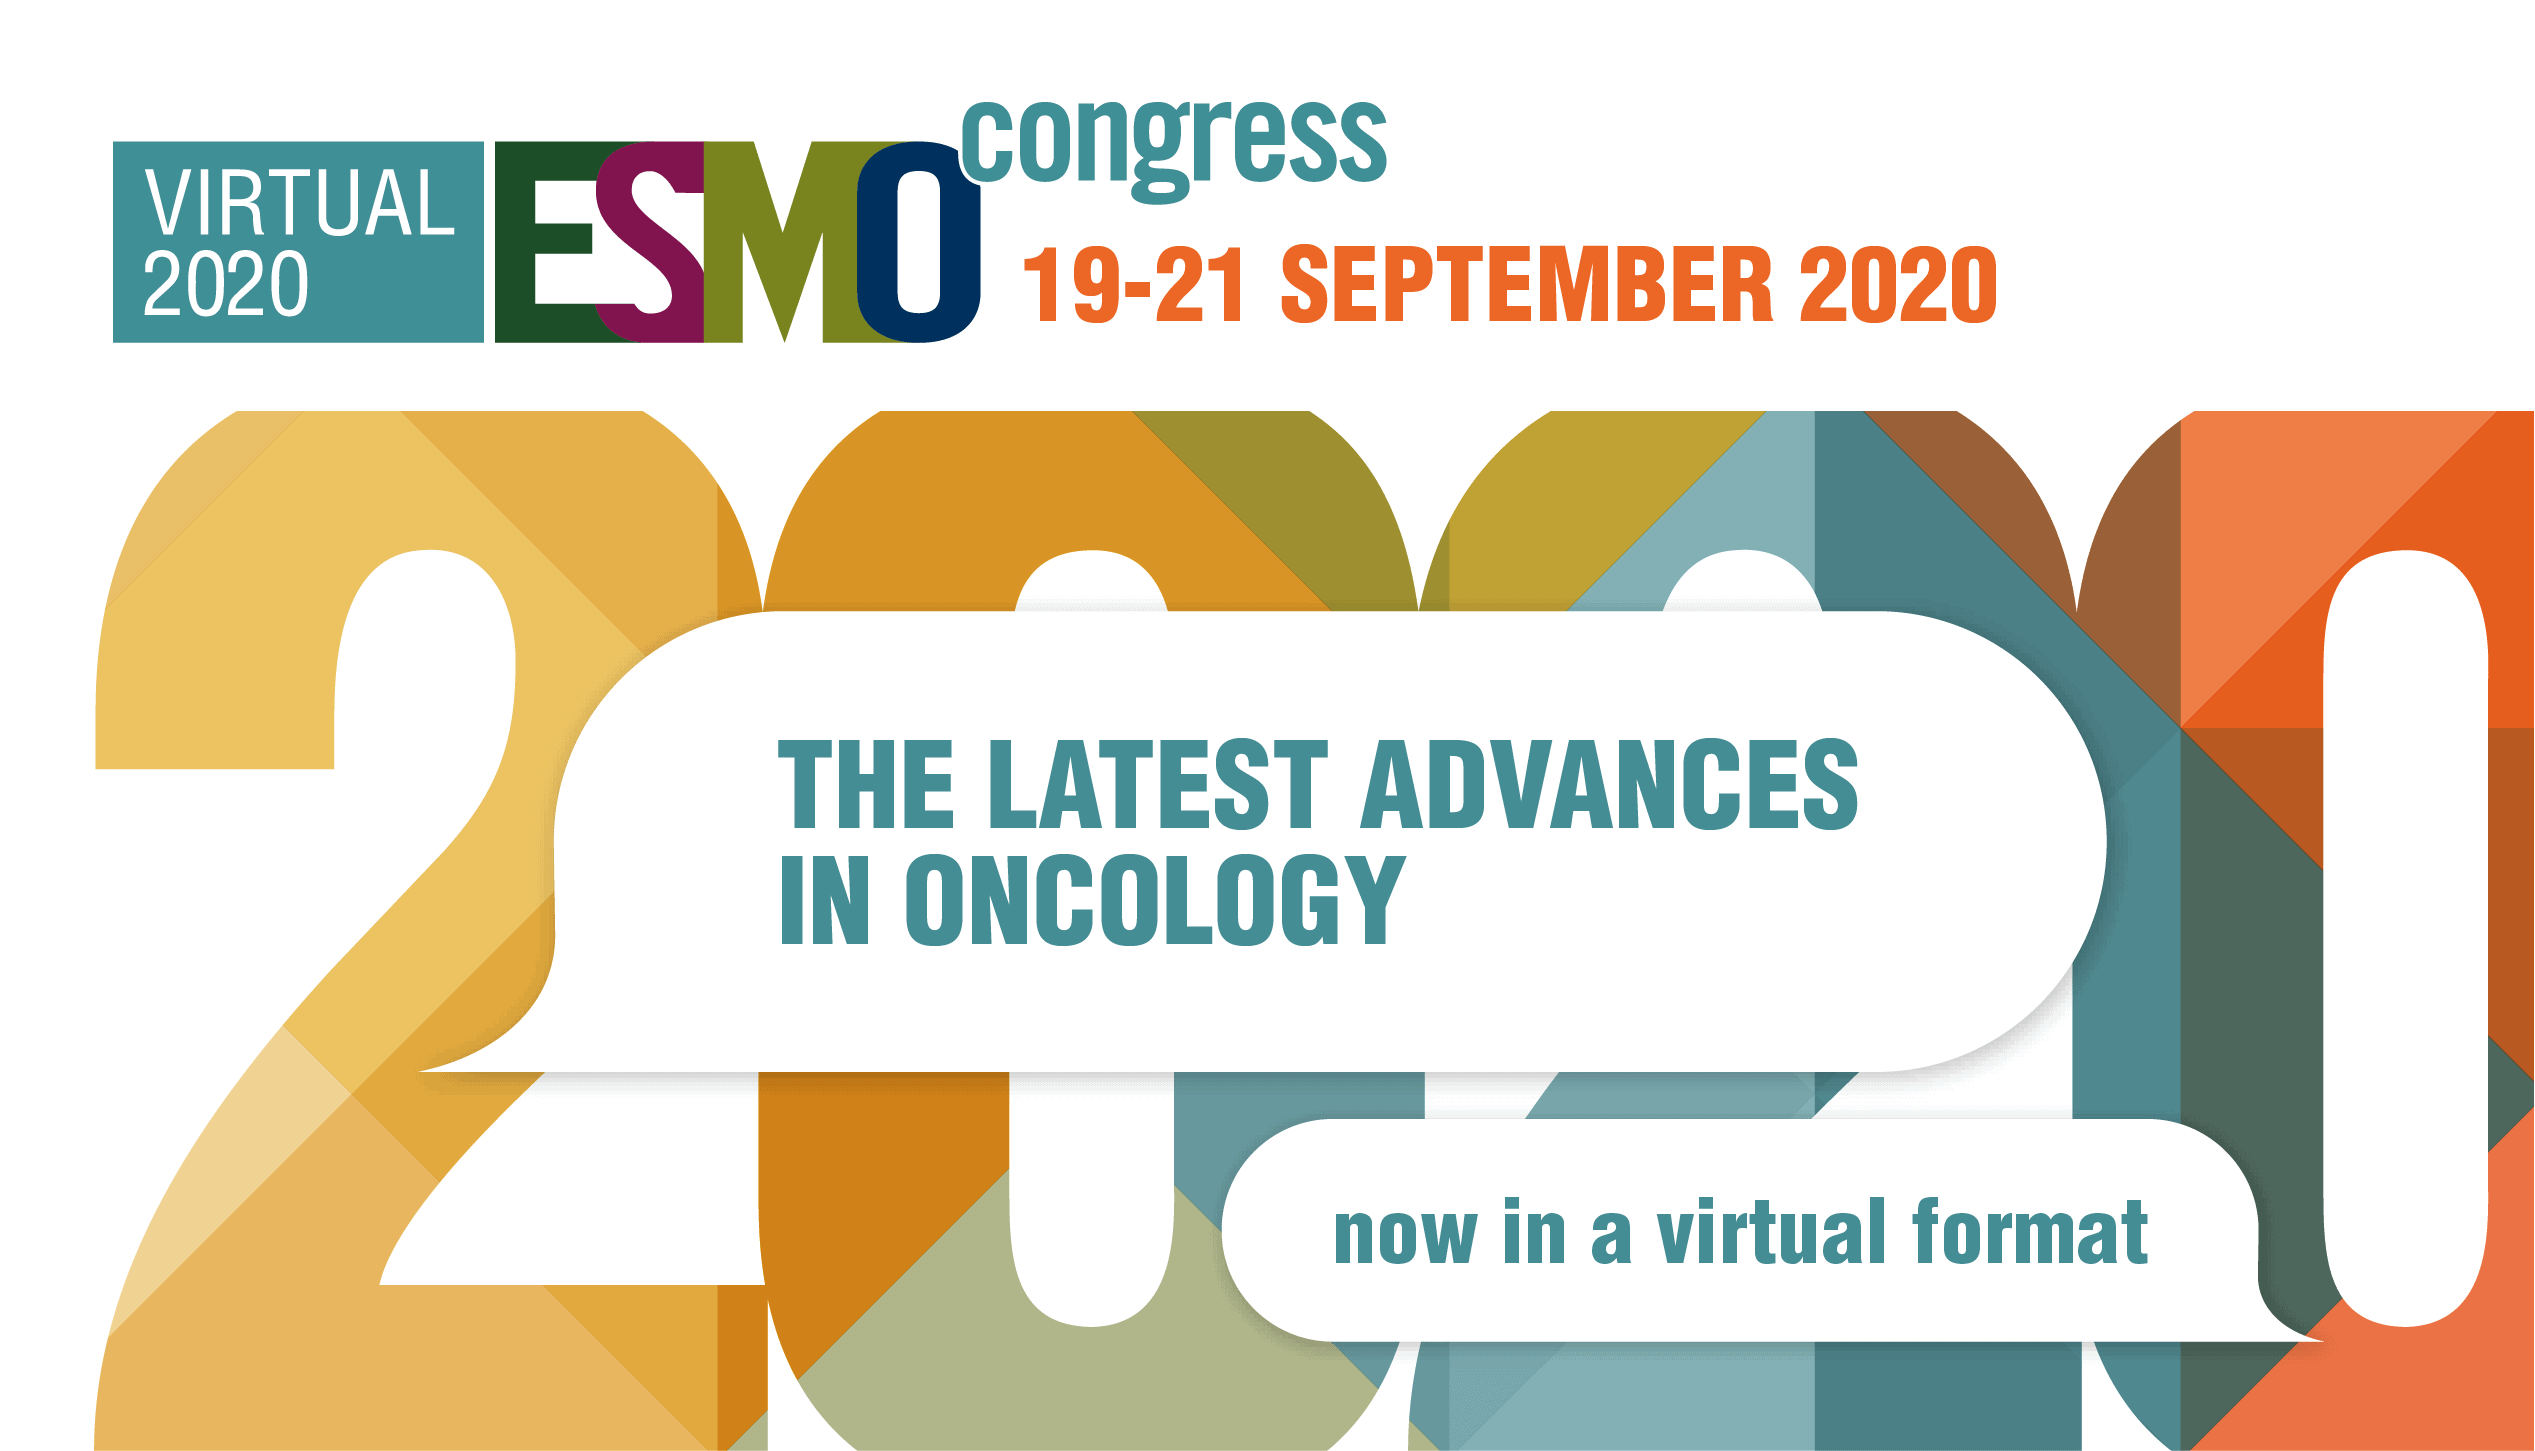 ESMO: Abemaciclib improves invasive disease-free survival in high-risk early breast cancer